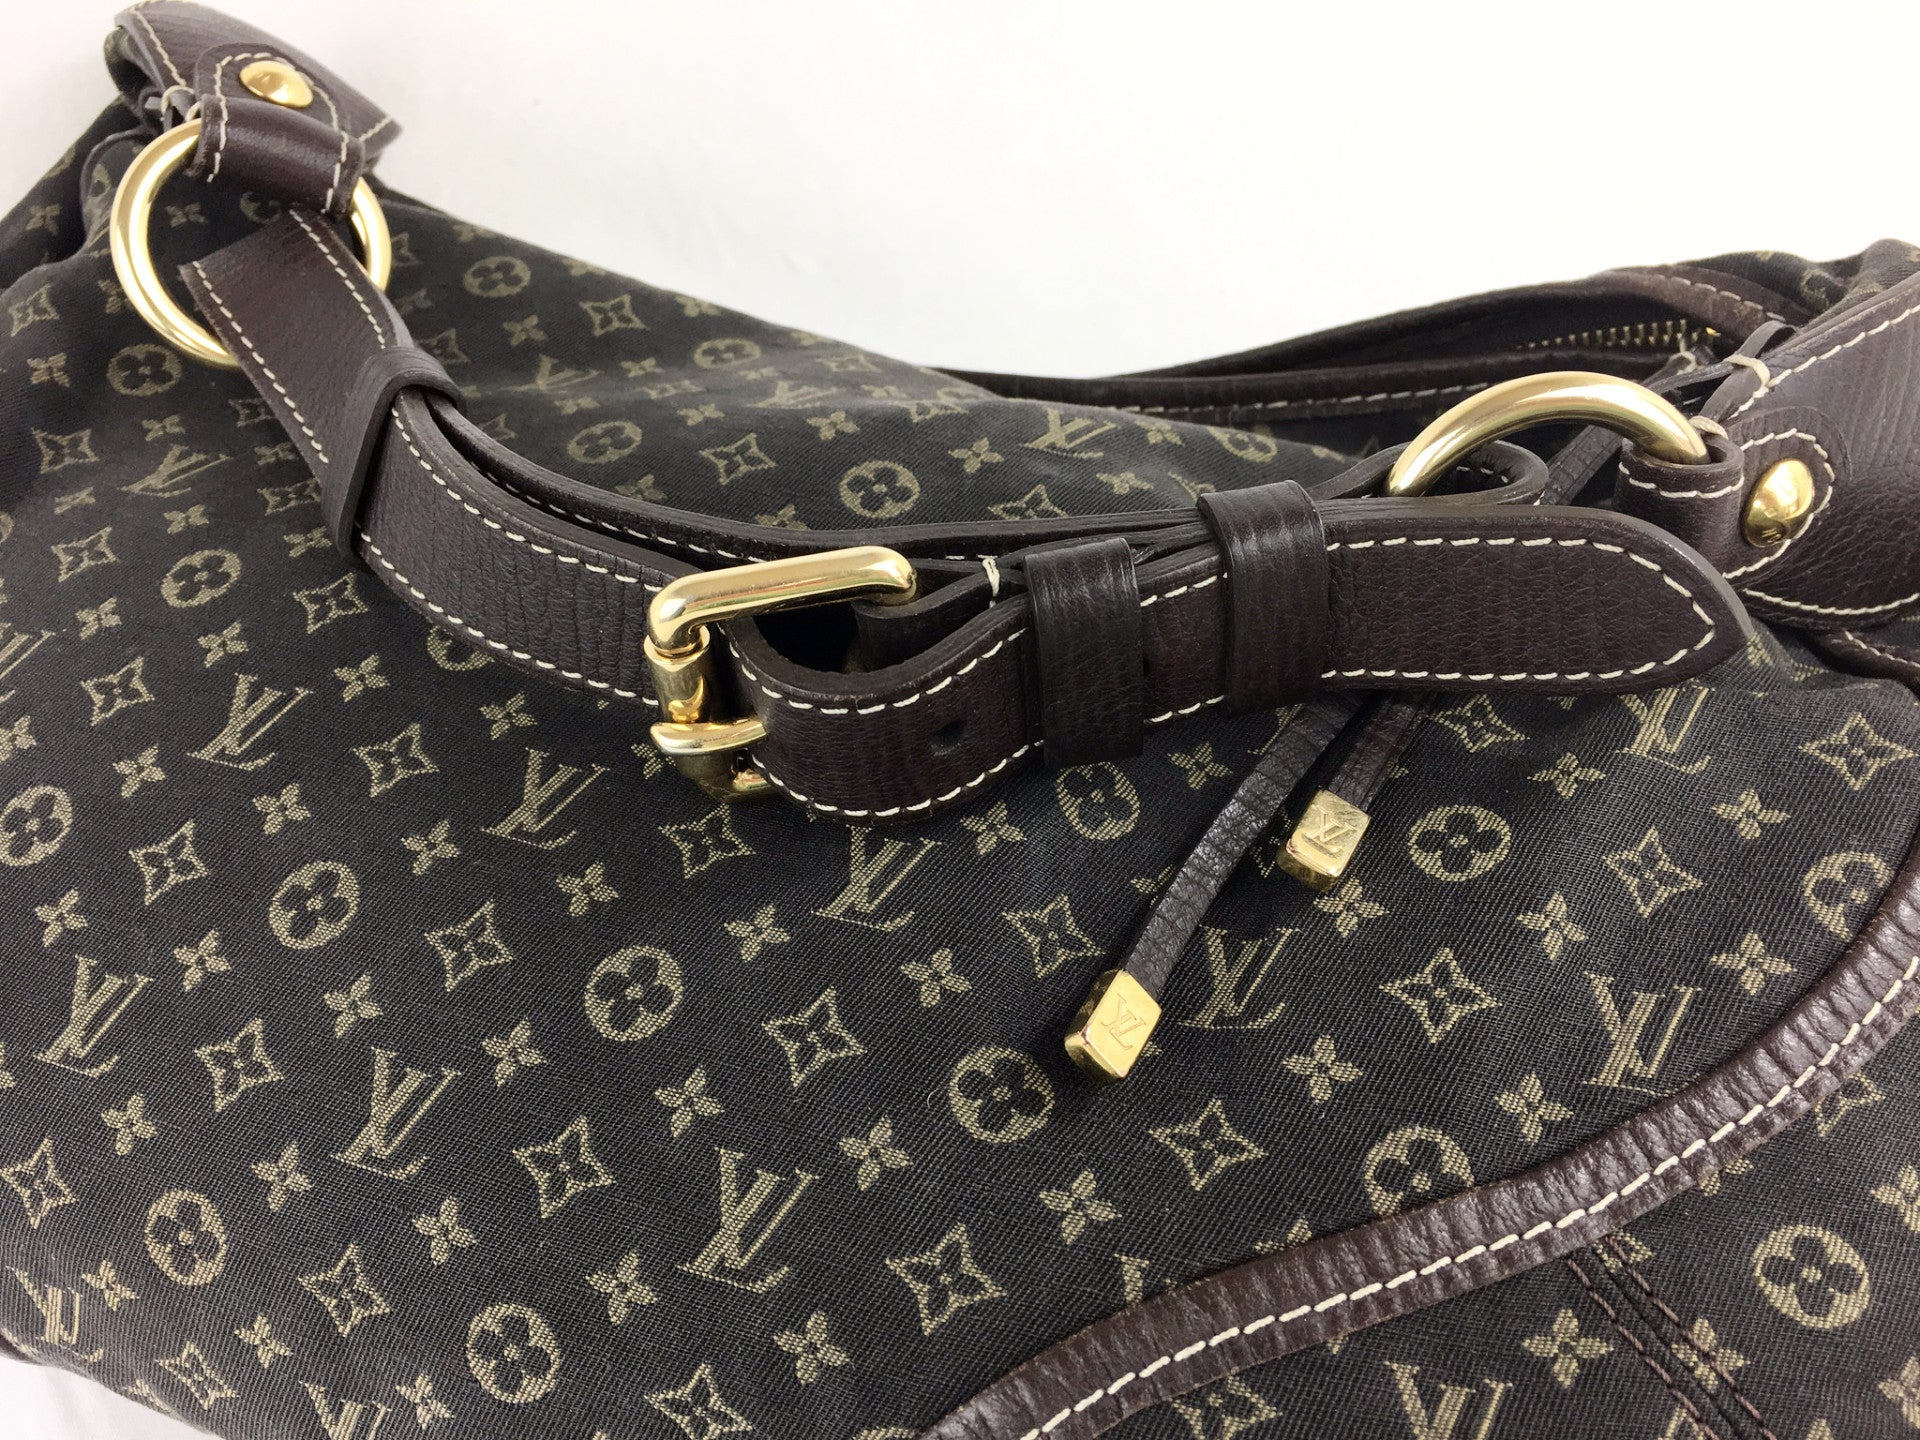 LOUIS VUITTON Monogram Canvas Hobo Bag